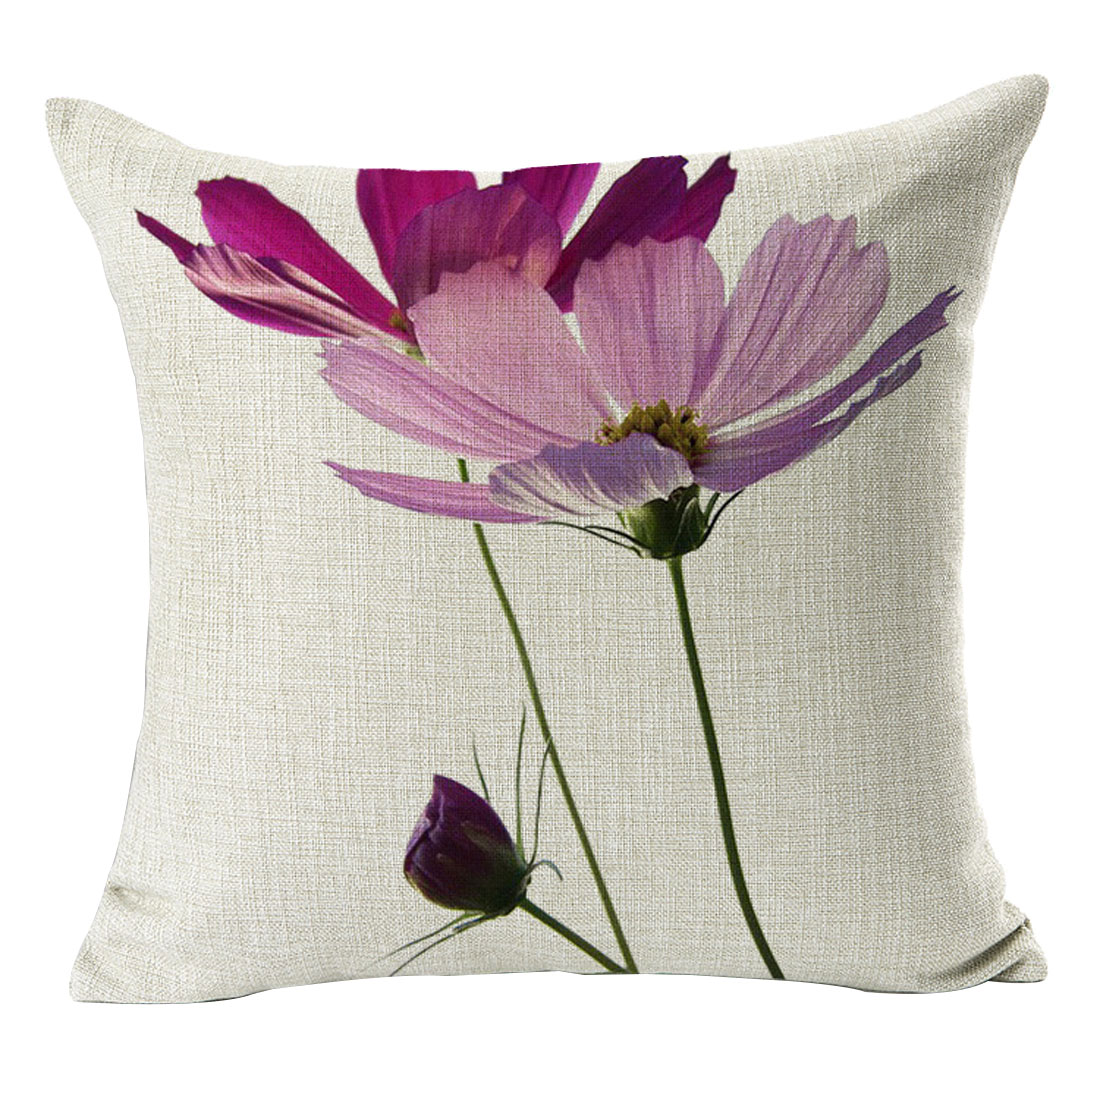 Home Sofa Cotton Linen Flower Pattern Square Design Waist Throw Cushion Pillow Cover